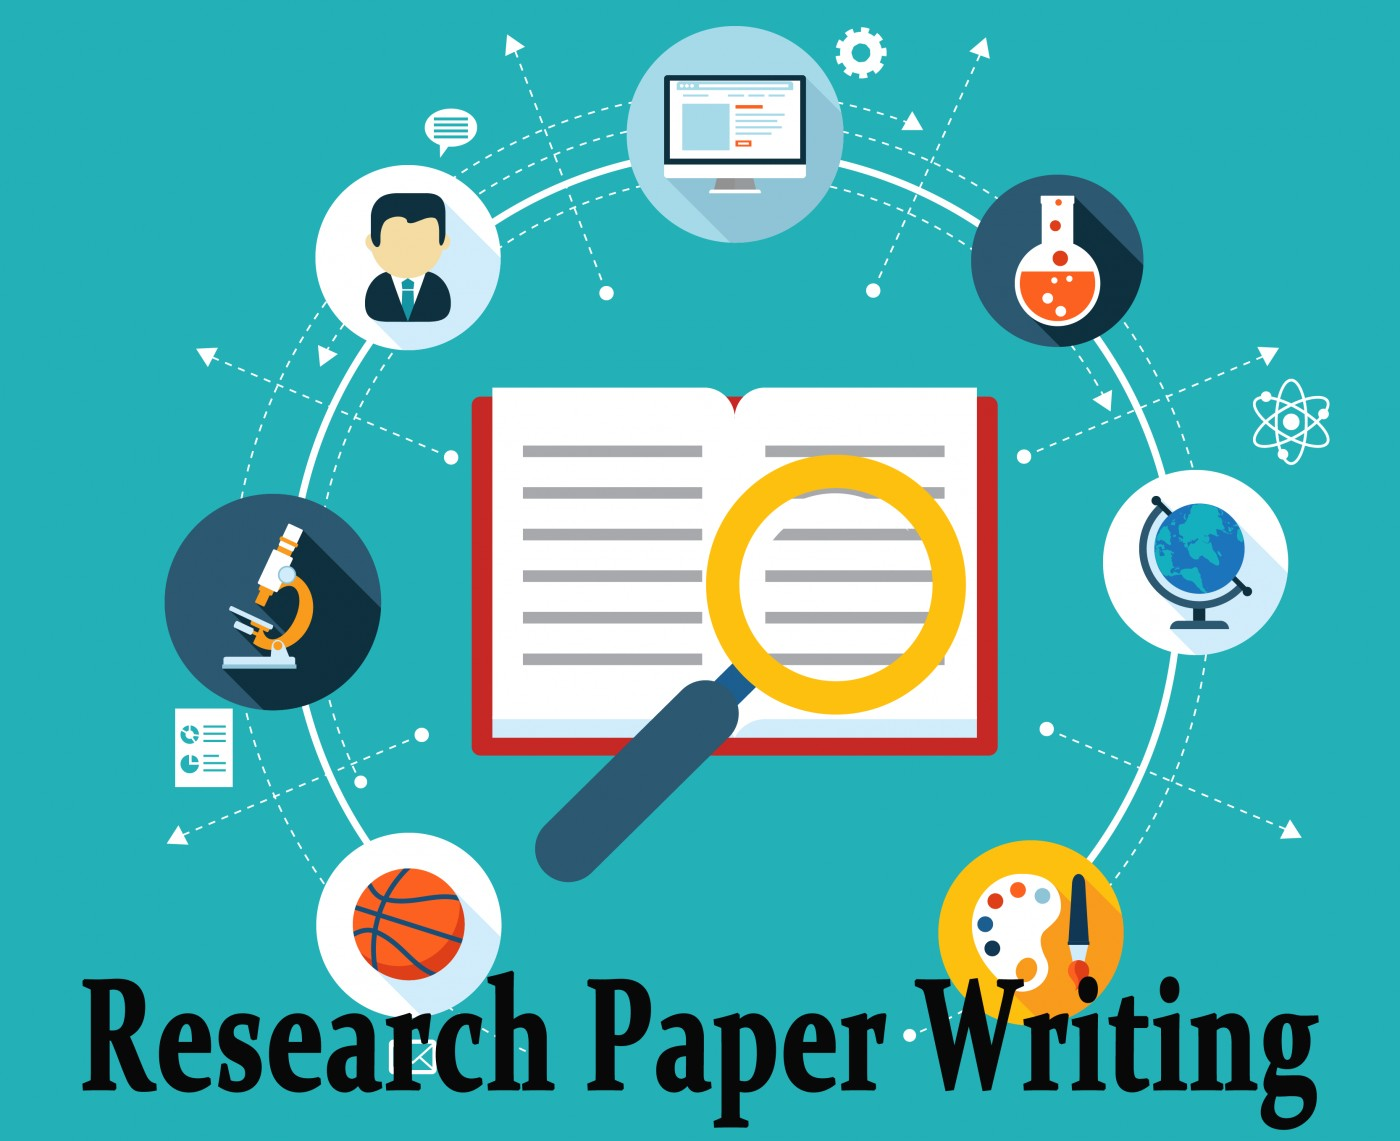 009 Writing The Research Paper 503 Effective Phenomenal Book Pdf Papers A Complete Guide Global Edition Abstract Ppt 1400